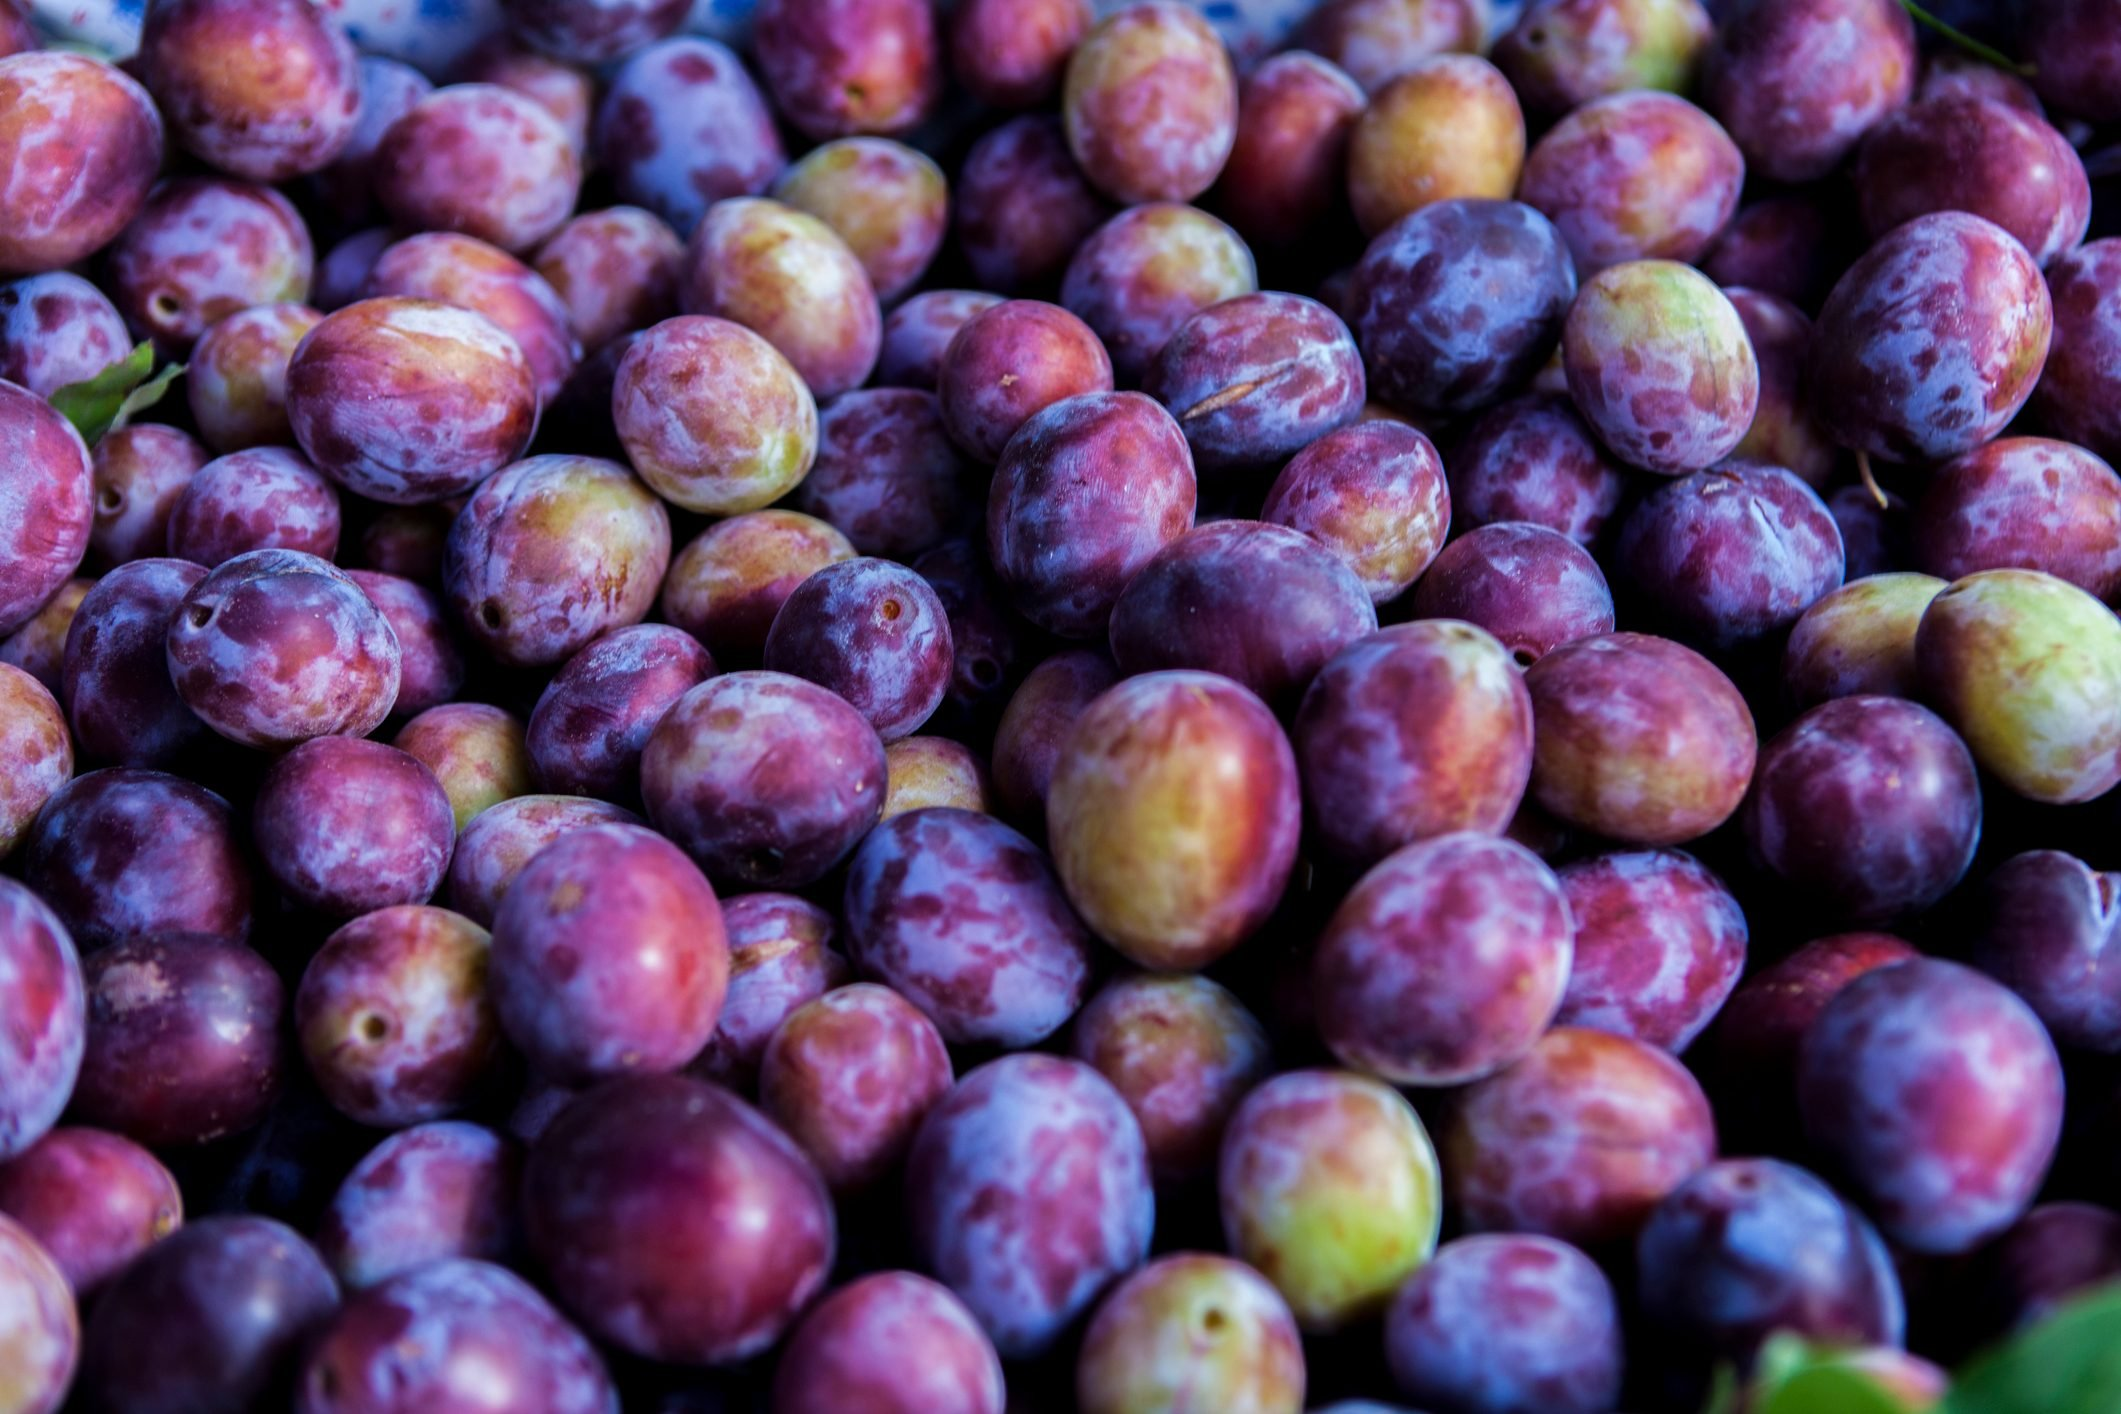 Full-frame of damson plums.